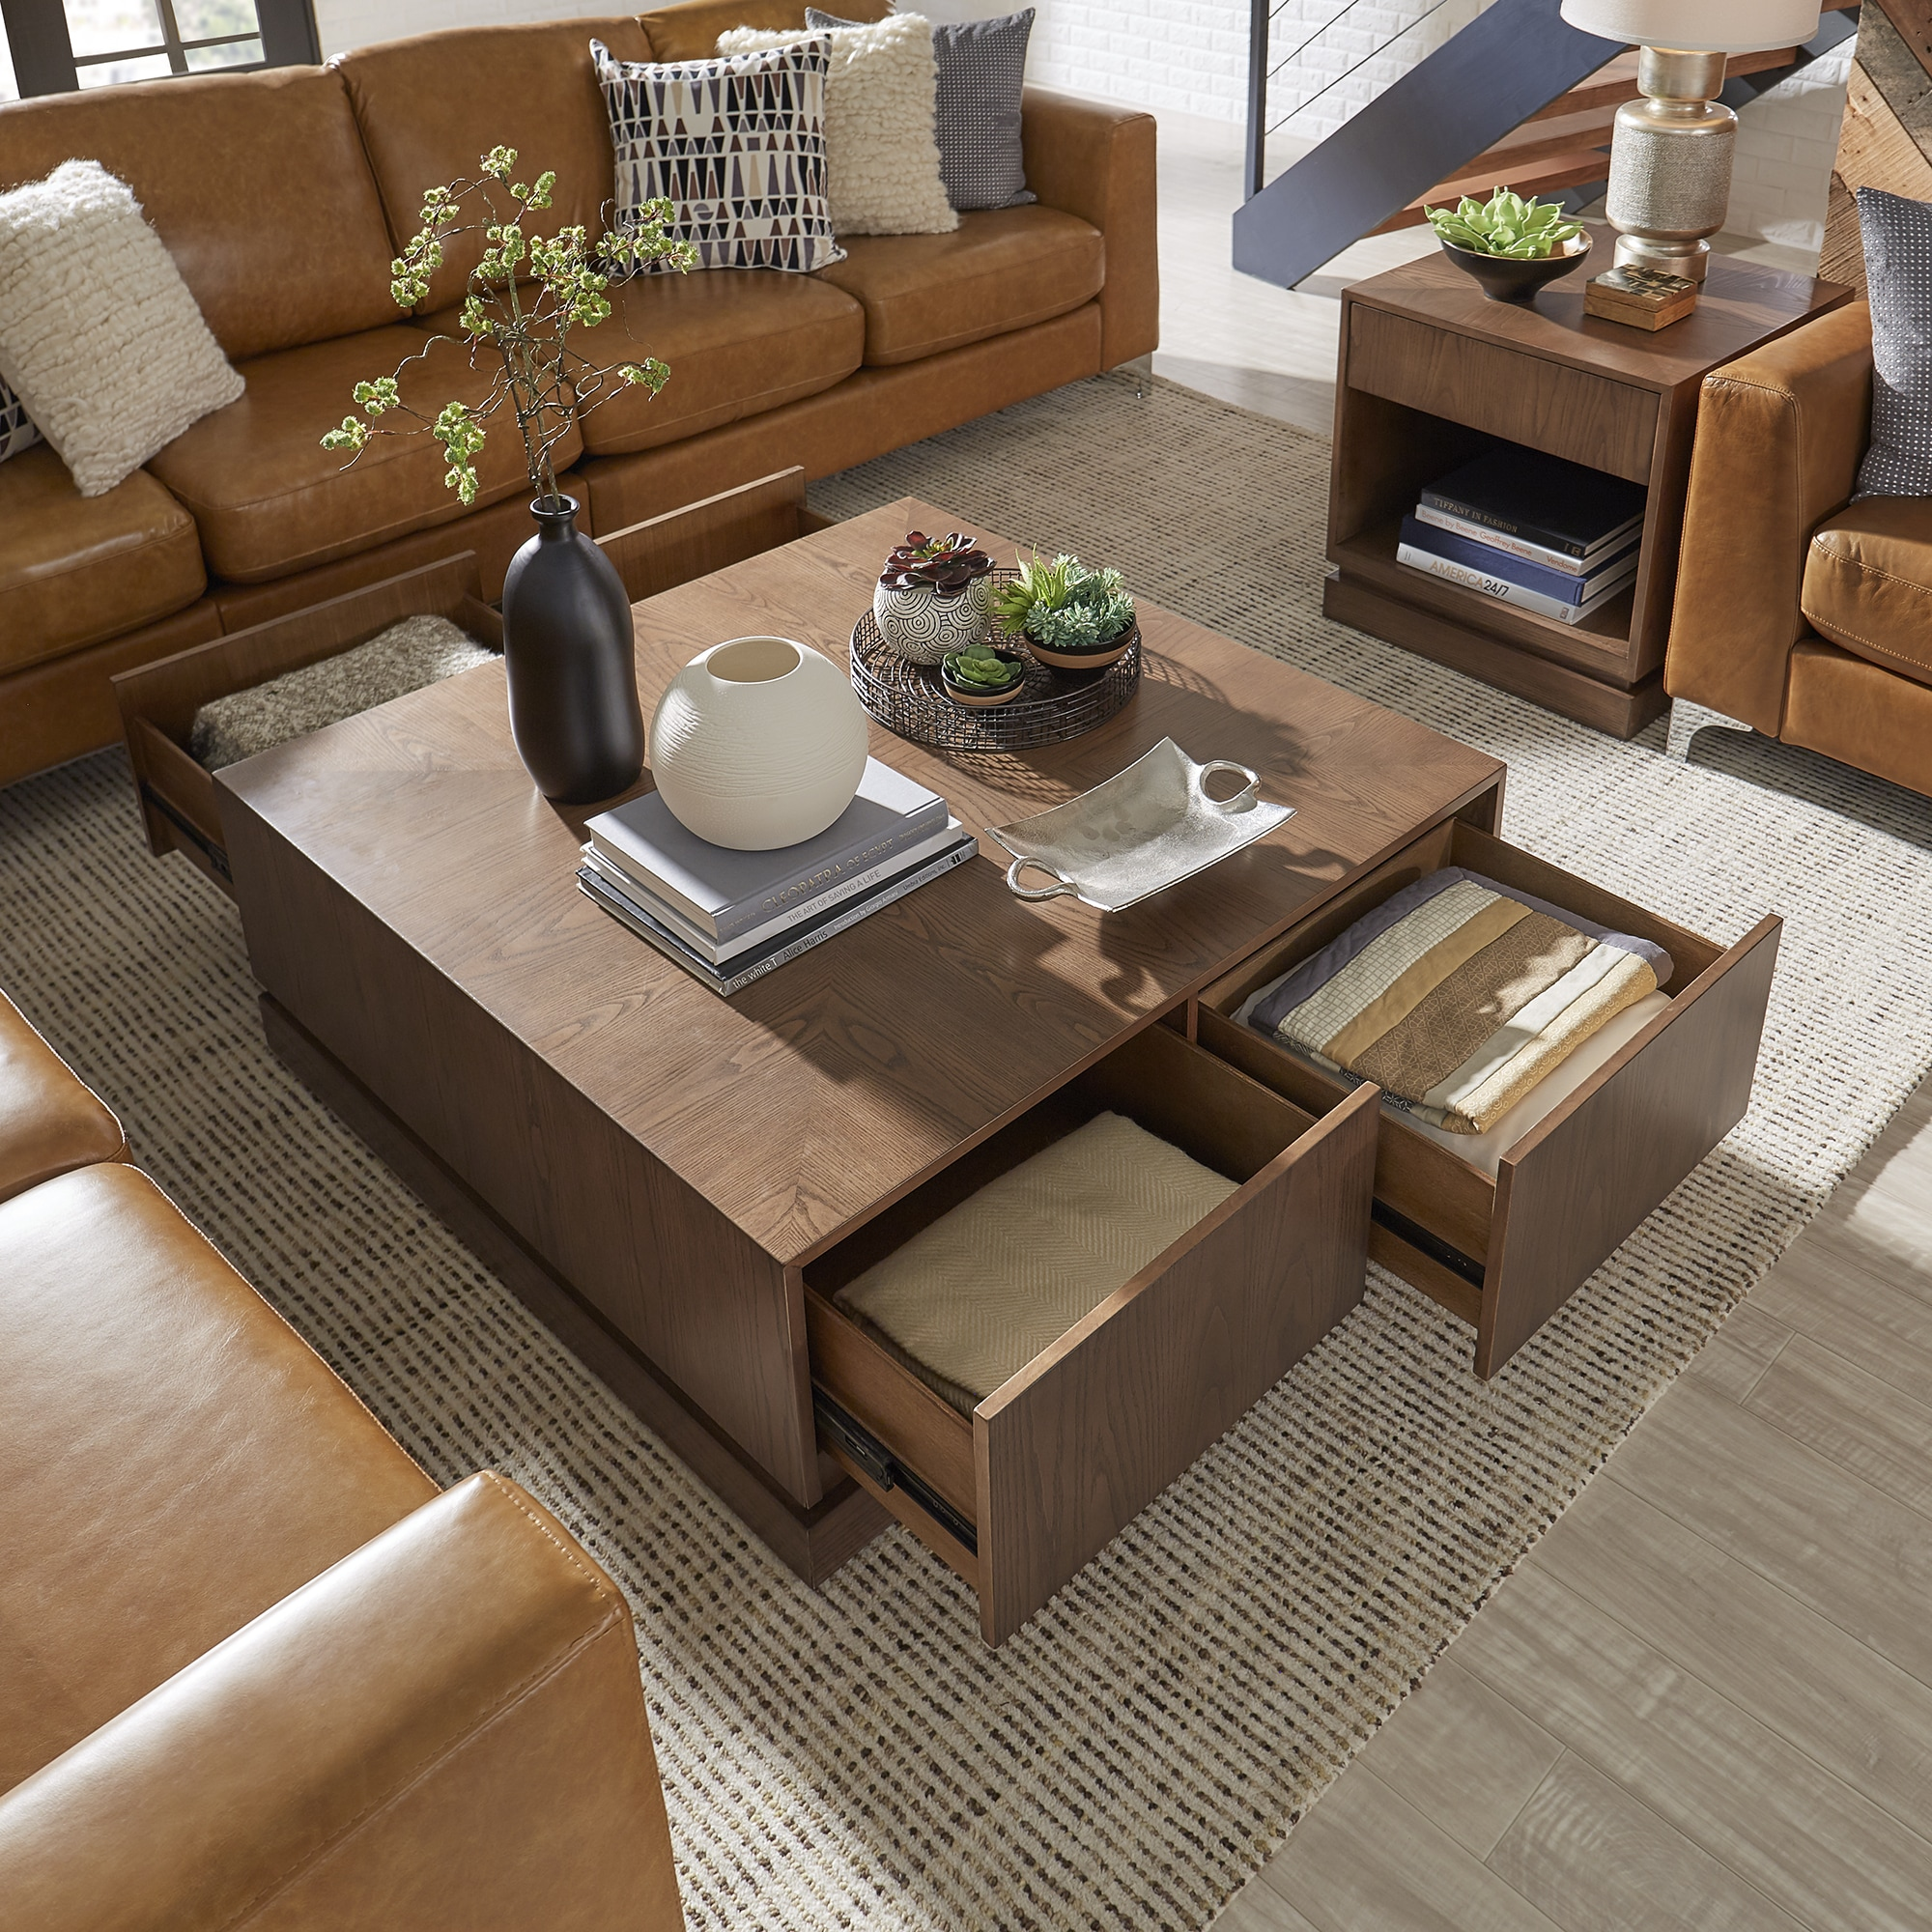 Hadley 4 Drawer Mid Century Wood Coffee Table By Inspire Q Modern Overstock 19457144